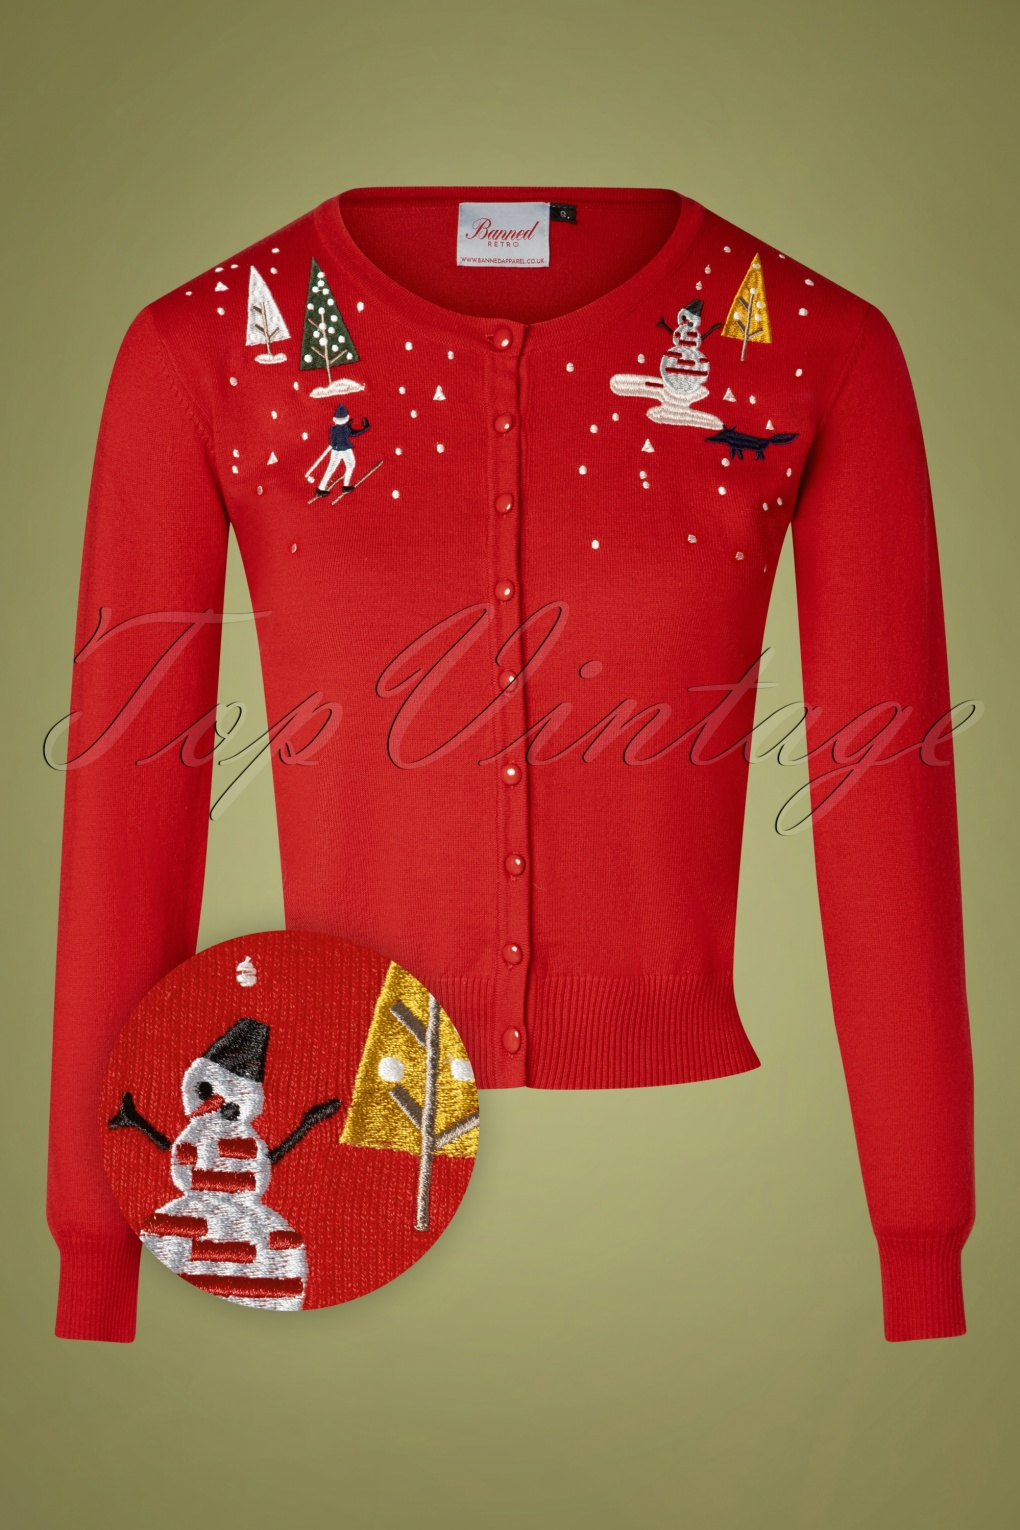 Vintage Sweaters, Retro Sweaters & Cardigan 50s Christmas Town Cardigan in Red £39.96 AT vintagedancer.com